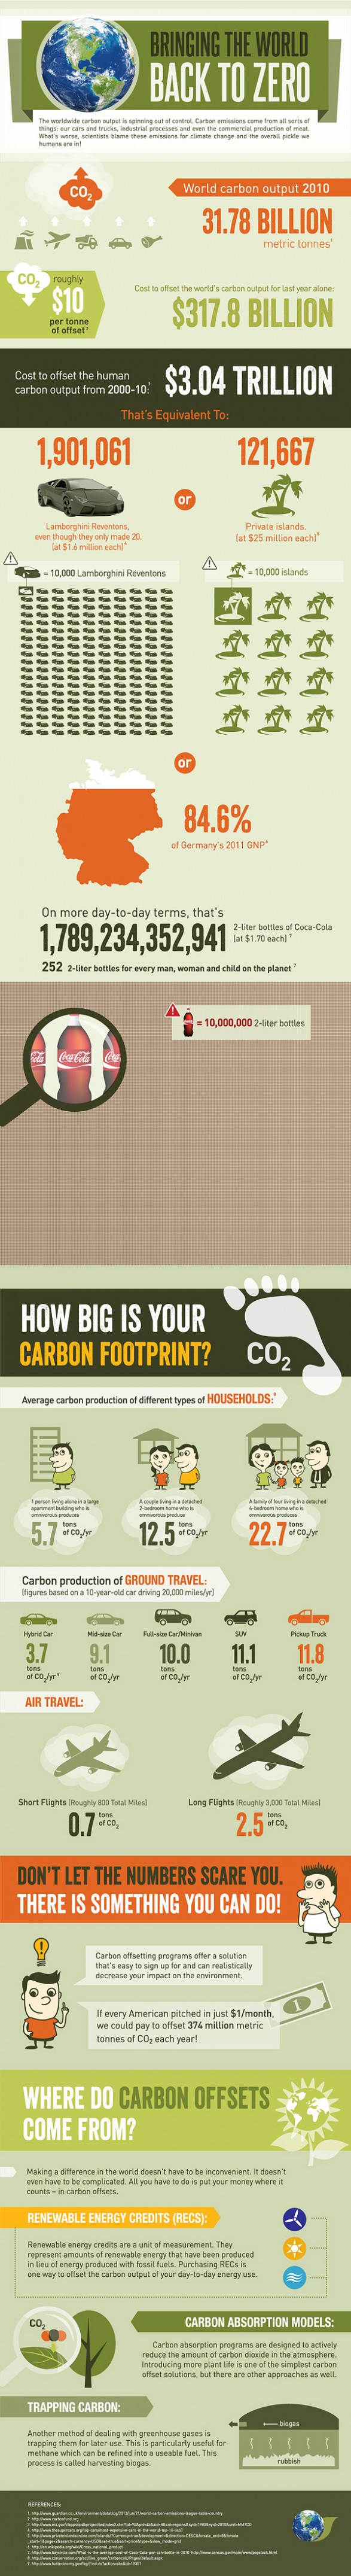 Carbon Footprint Reduction [INFOGRAPHIC]